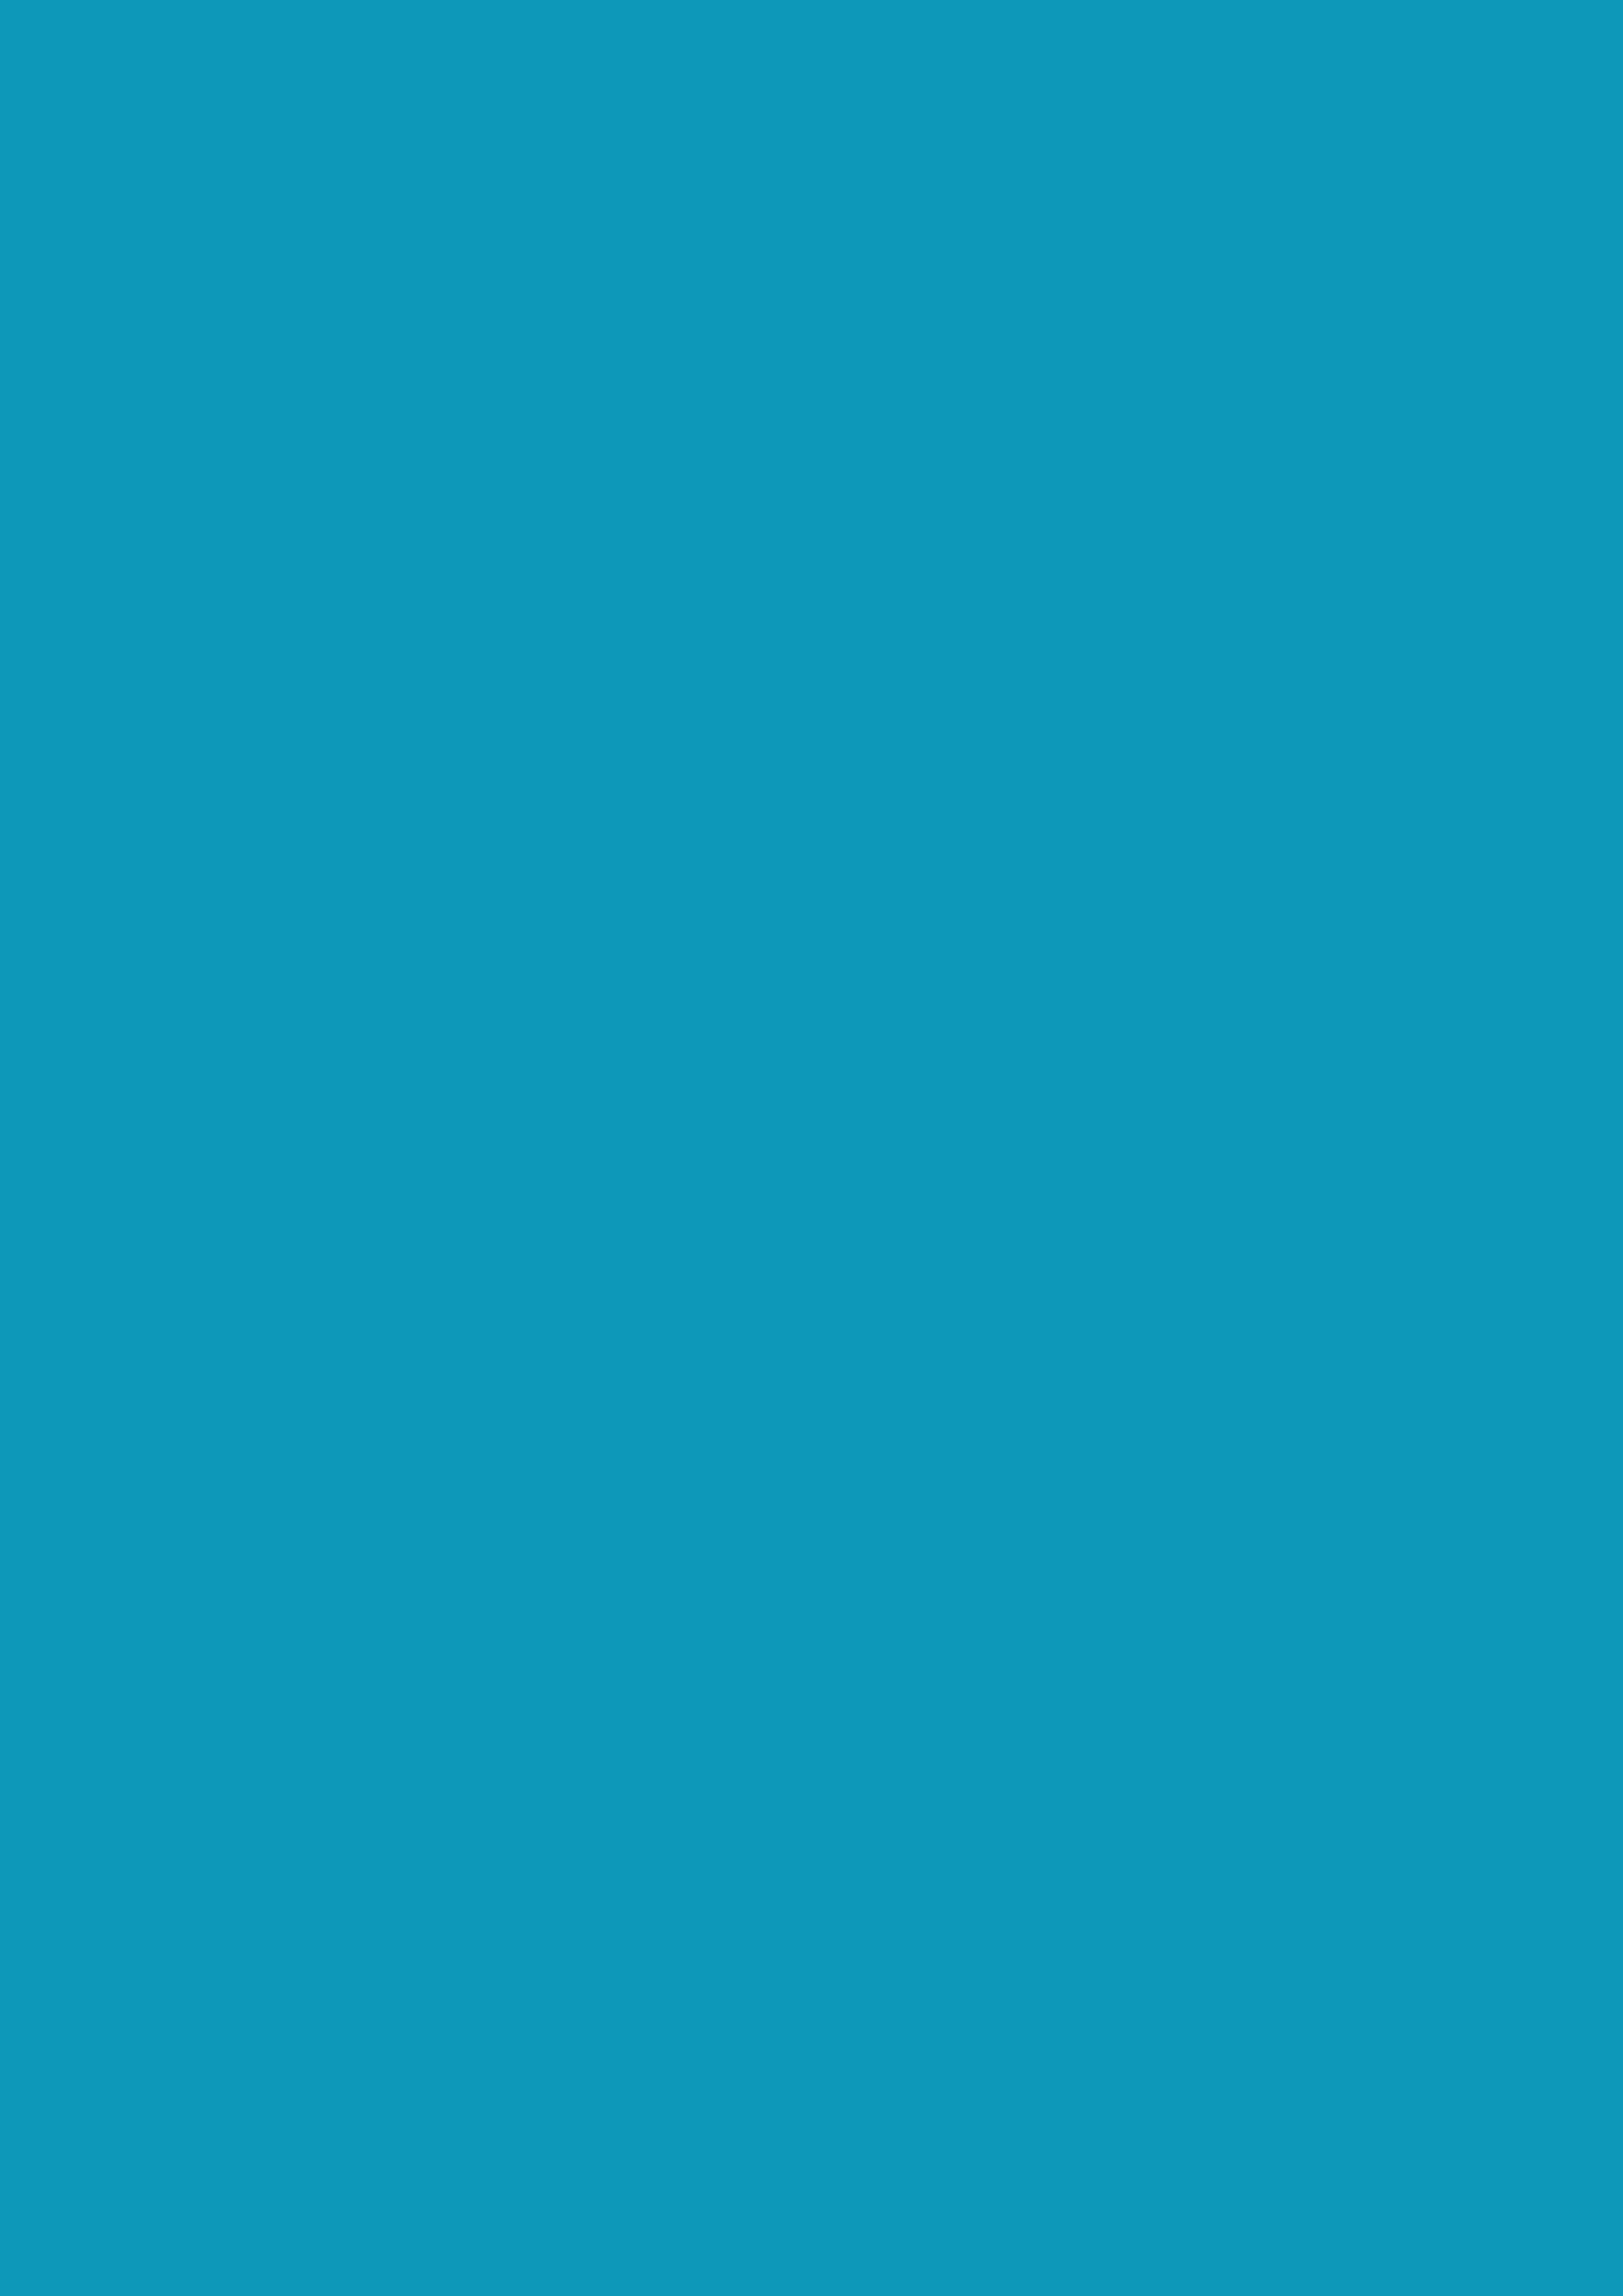 2480x3508 Blue-green Solid Color Background